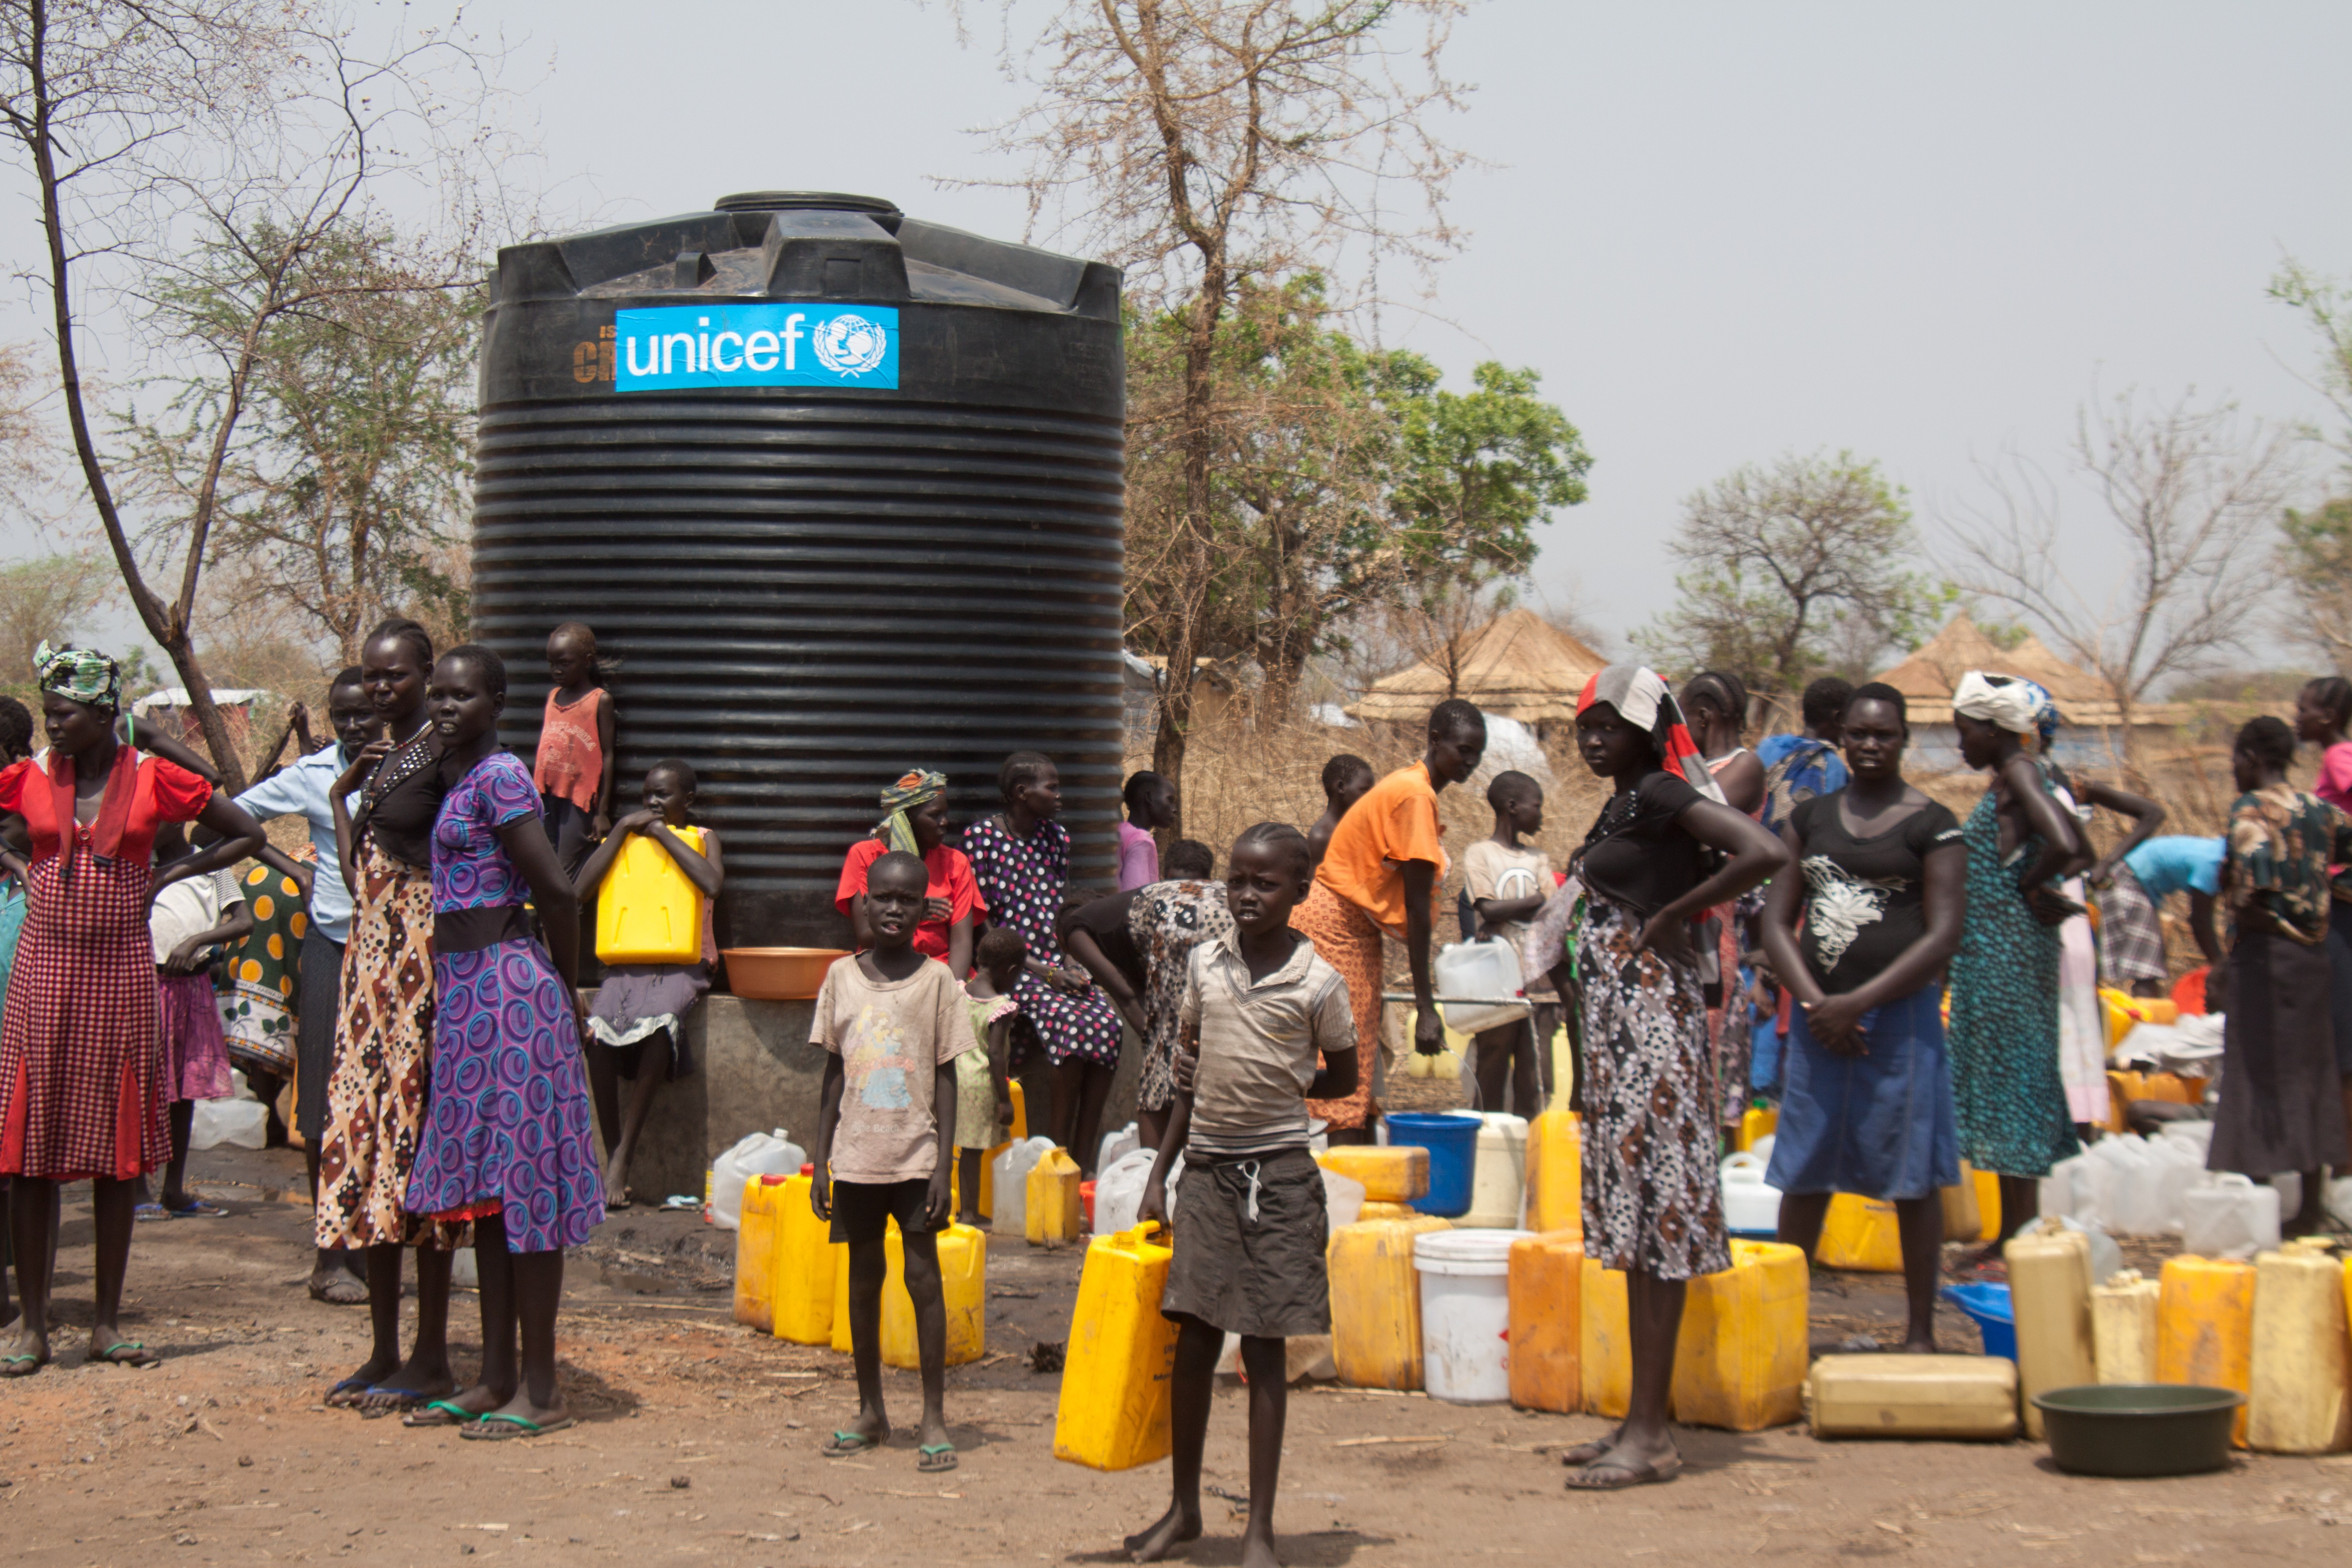 Refugees from South Sudan at a camp in Uganda wait for water